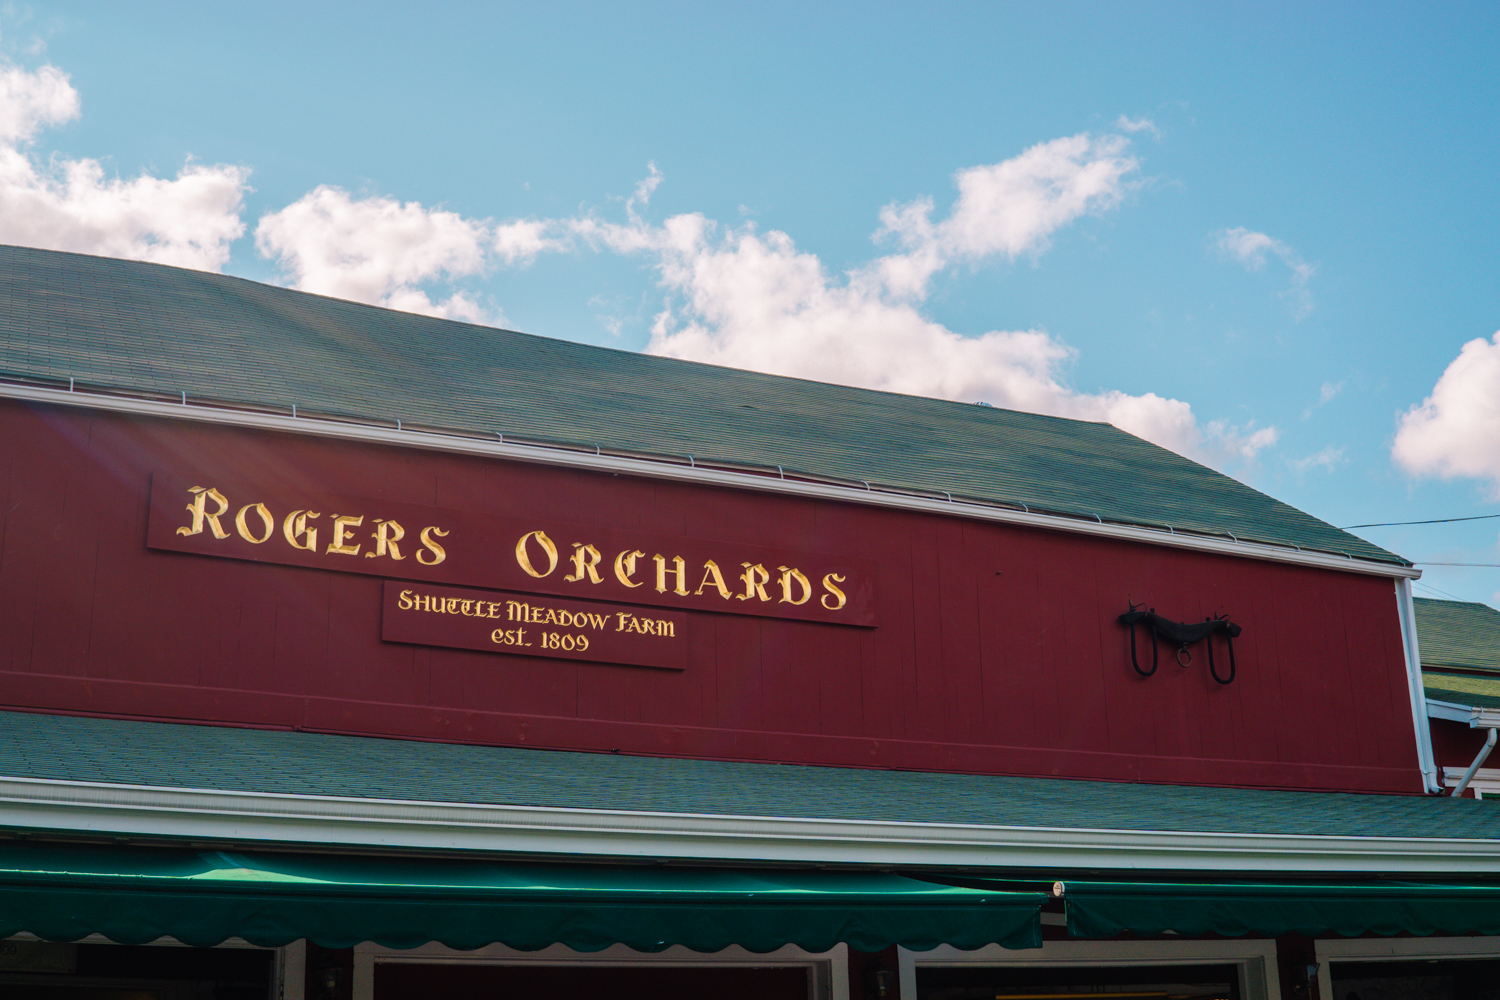 rogers orchards-11-1.jpg